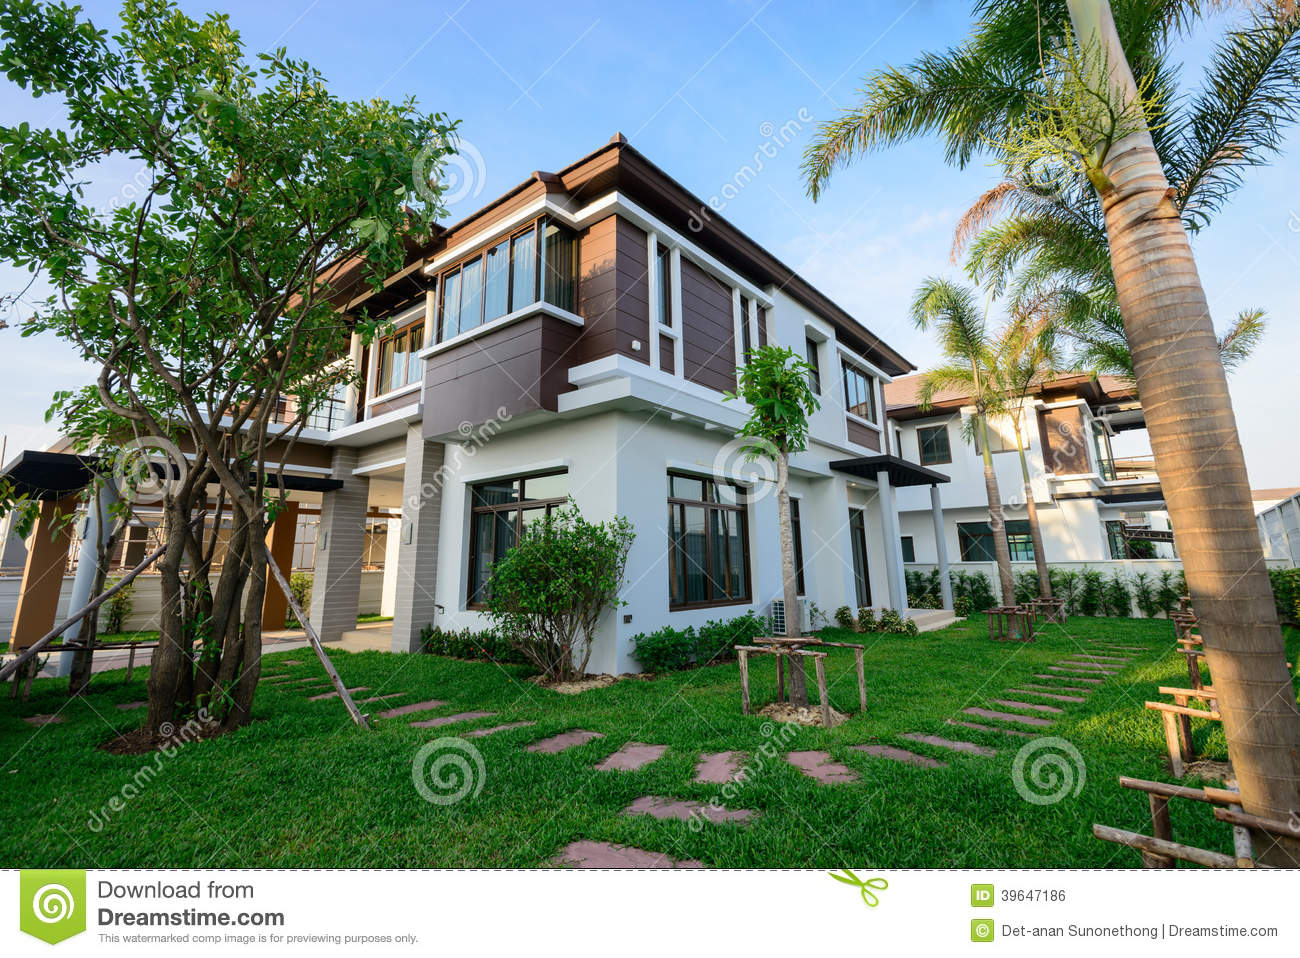 Modern House nd Garden Stock Photo - Image: 39647186 - ^